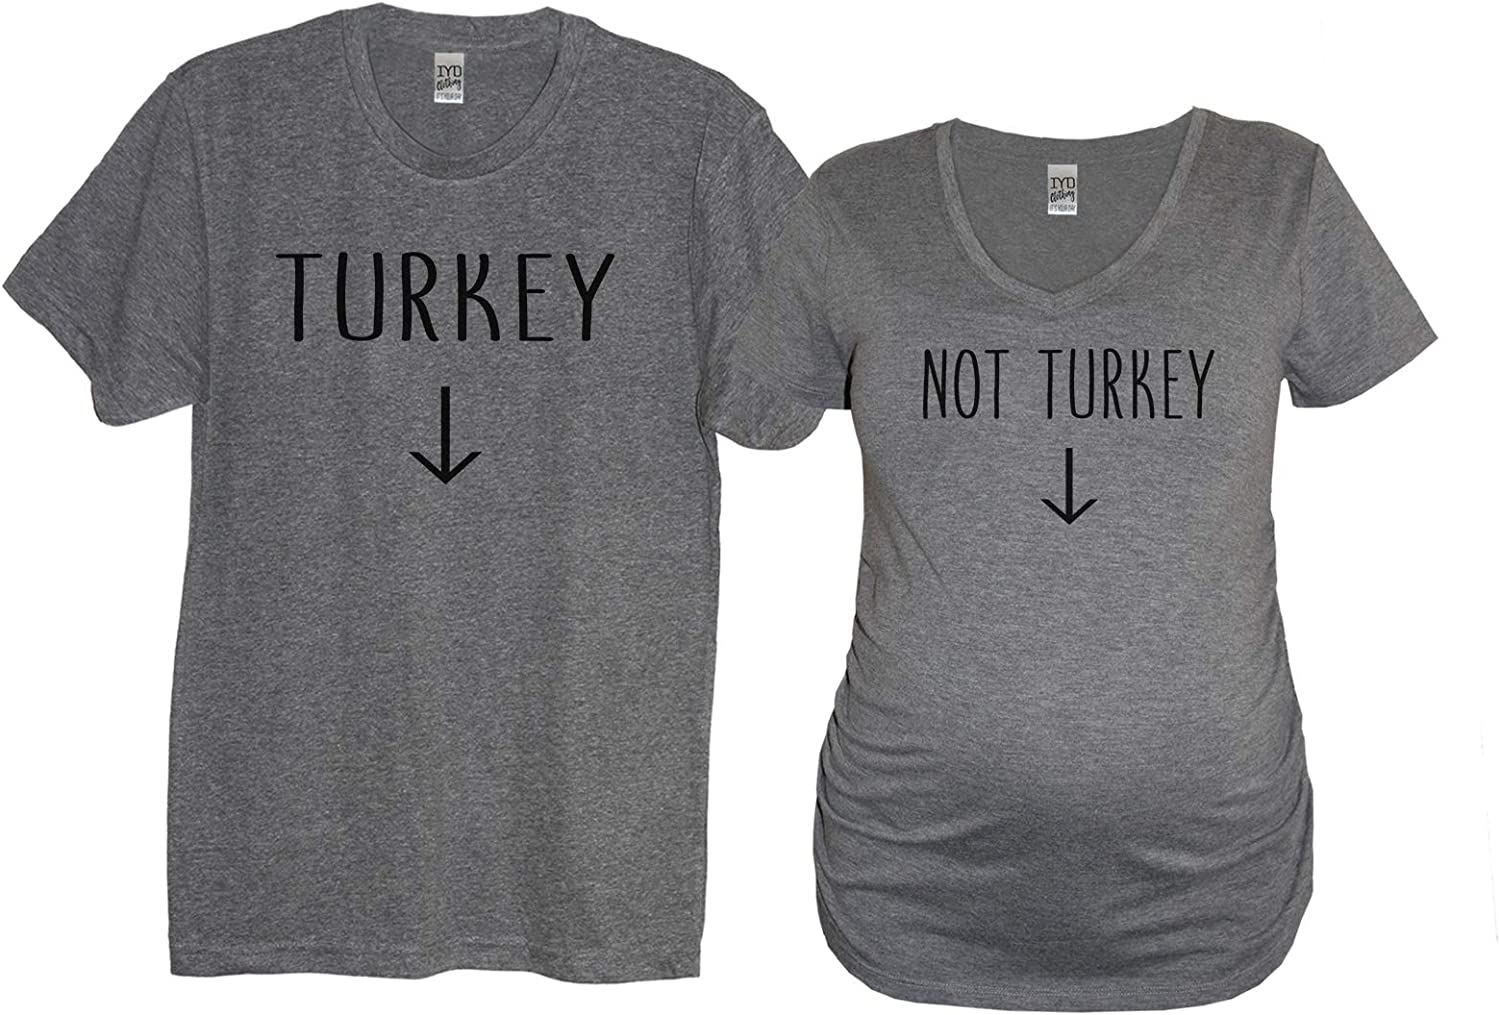 Turkey Crew Neck or Not Turkey Maternity Couples Tri-Blend Shirts (Sold Separately)